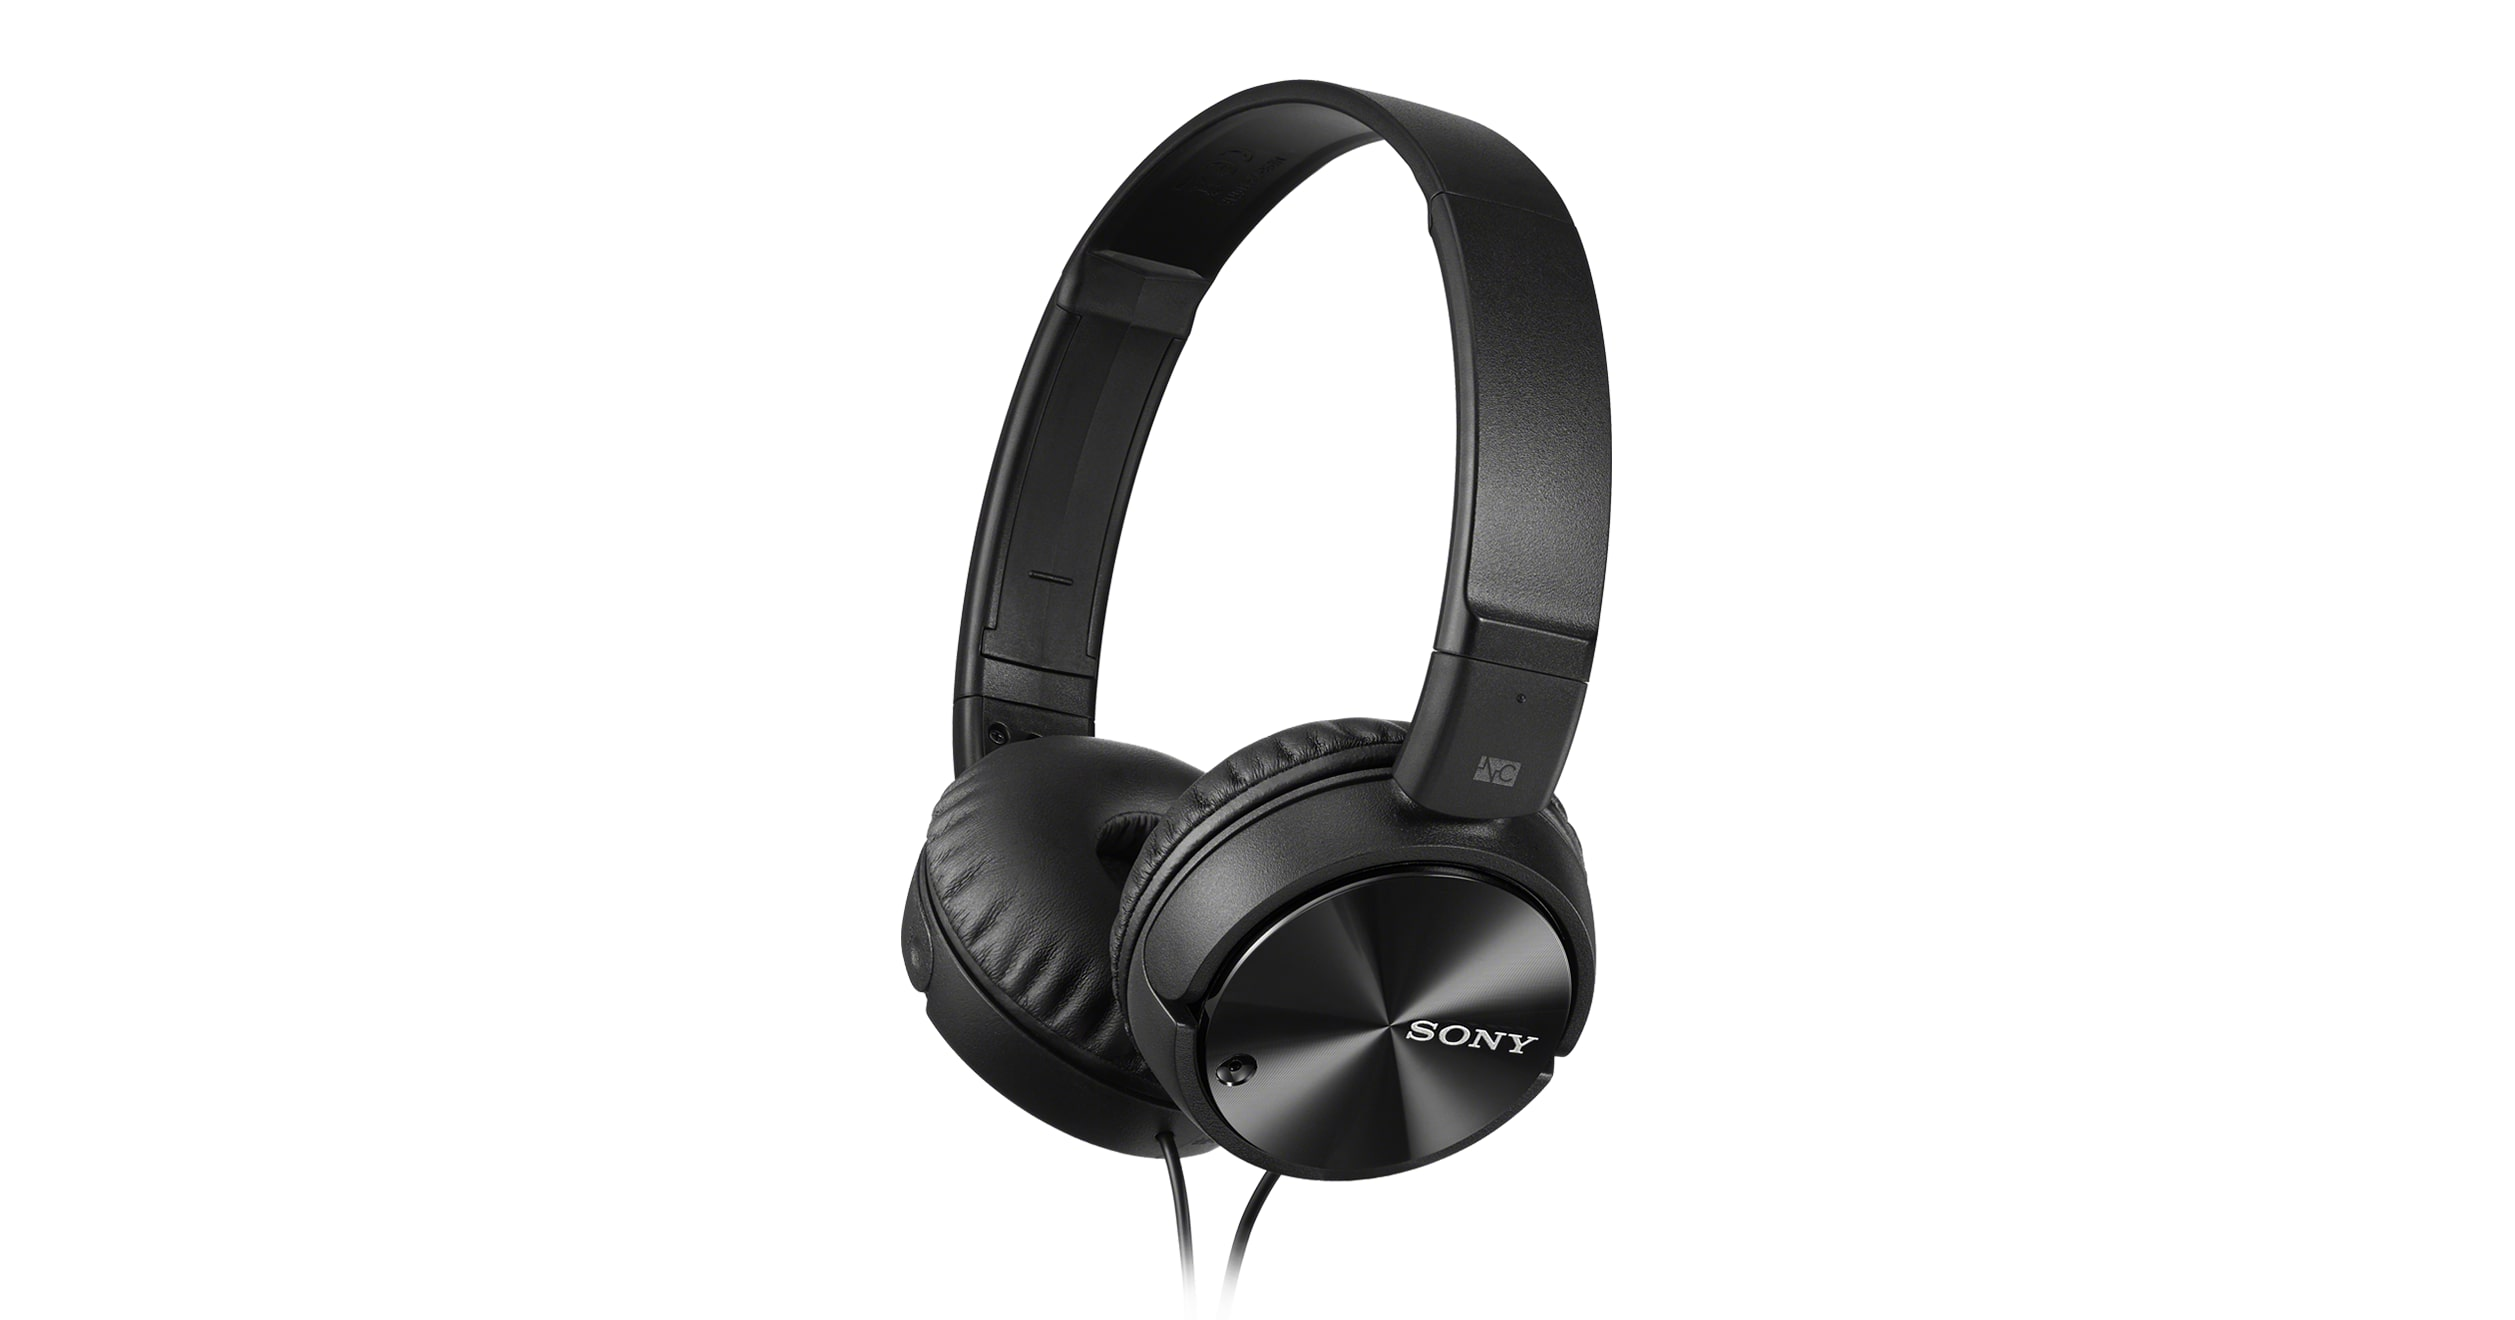 be3bc7a27ec ZX110NC Noise-Cancelling Headphones | MDR-ZX110NC | Sony US